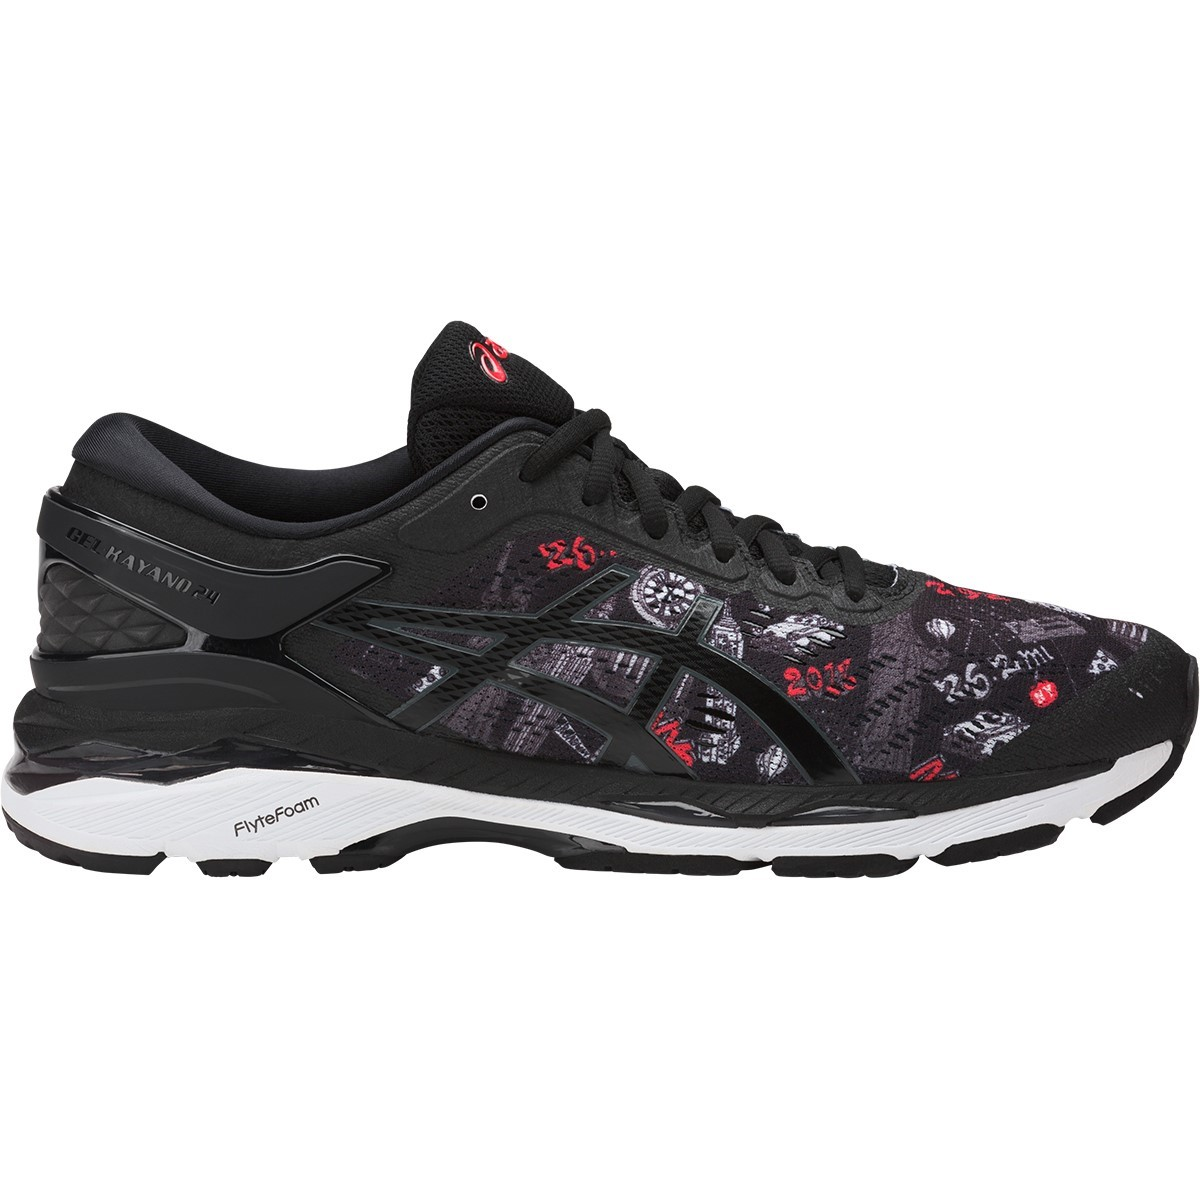 asics gel kayano 24 nyc mens running shoes limited edition online sportitude. Black Bedroom Furniture Sets. Home Design Ideas